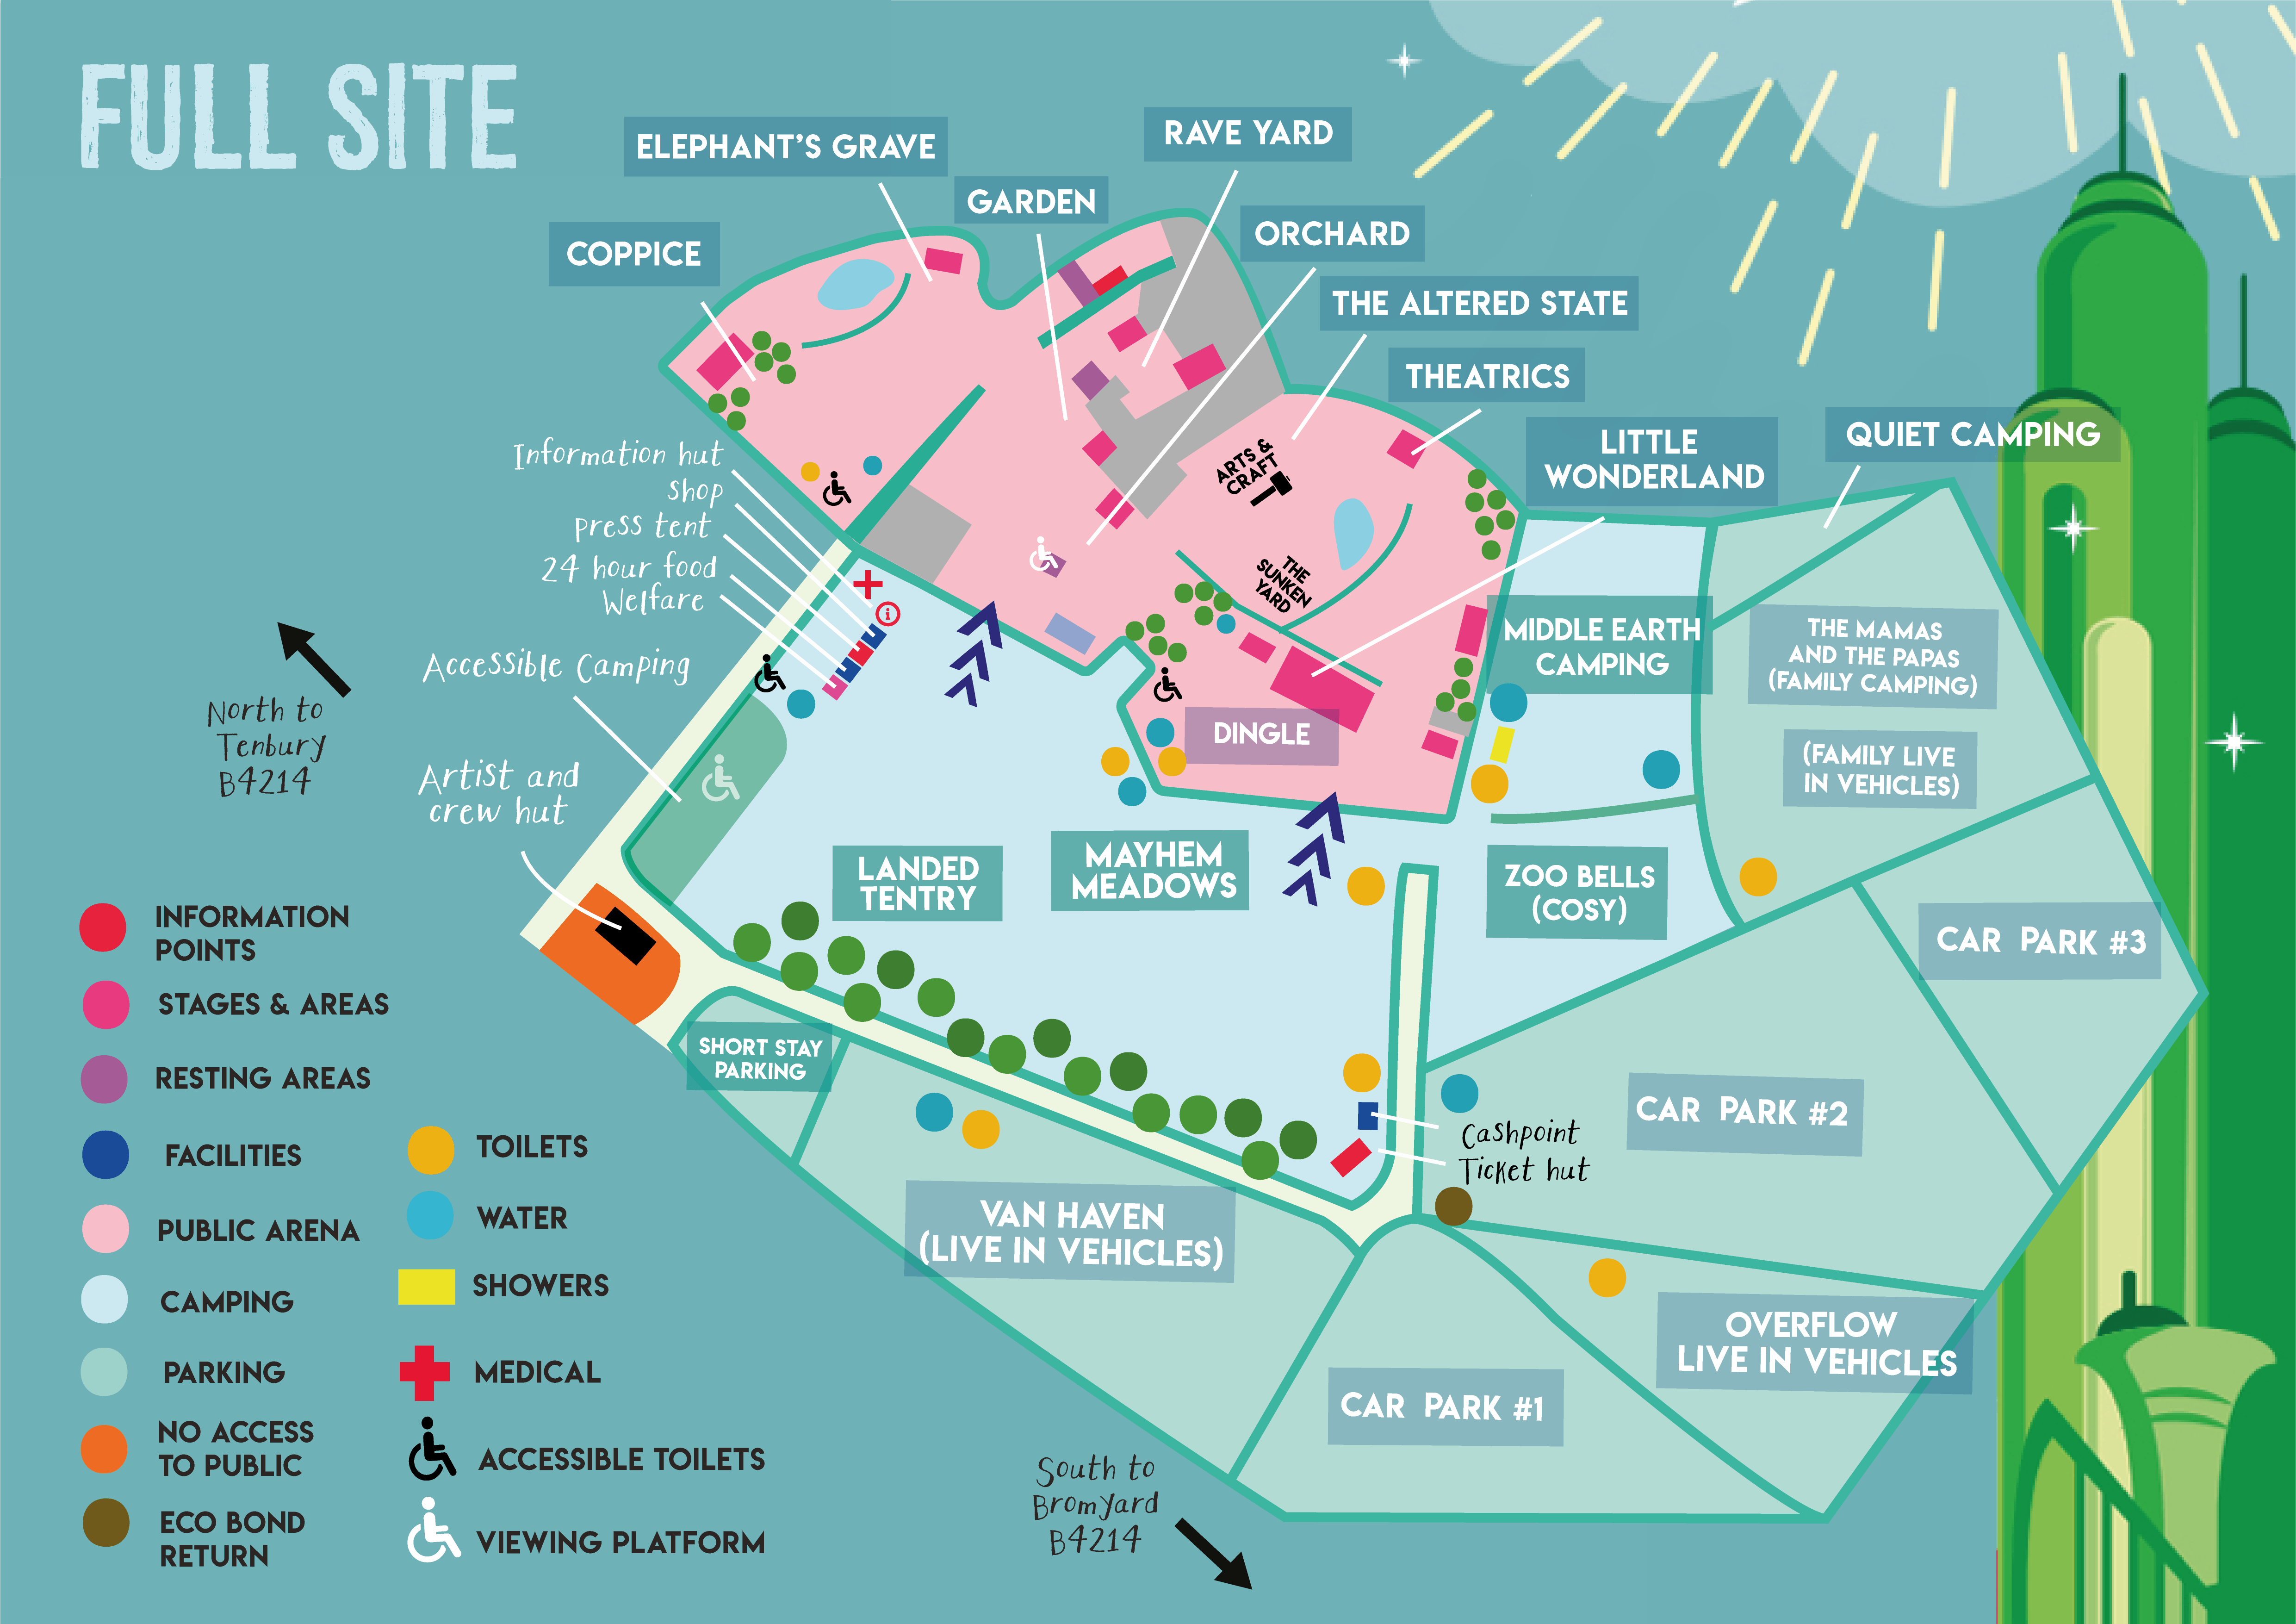 Full site map of Nozstock 2019